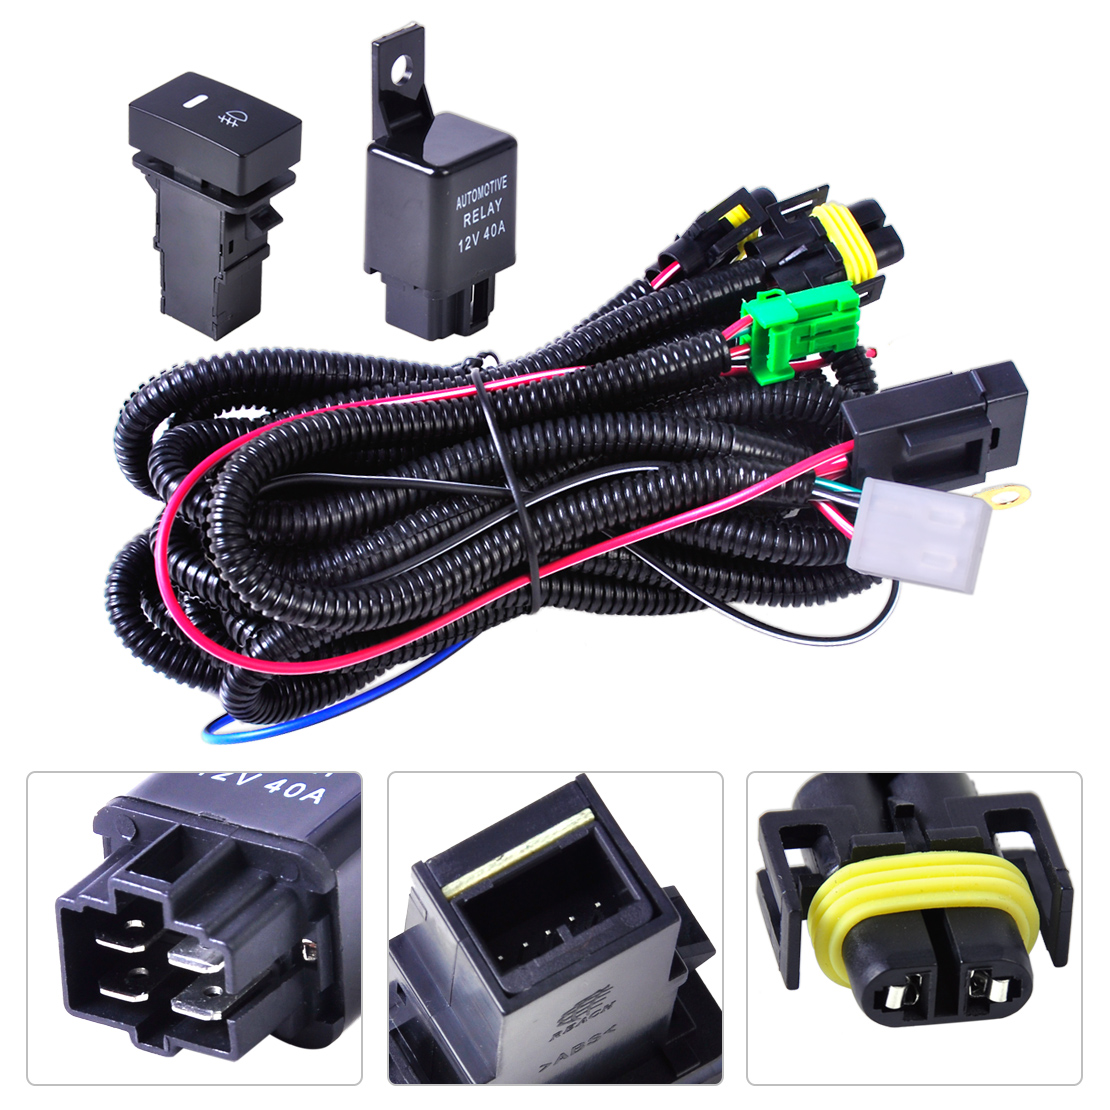 DWCX Wiring Harness Sockets Wire+Switch for H11 Fog Light Lamp for Ford  Focus 2008 2014 Acura TSX 11 14 Nissan Cube 2009 2015-in Car Switches &  Relays from ...